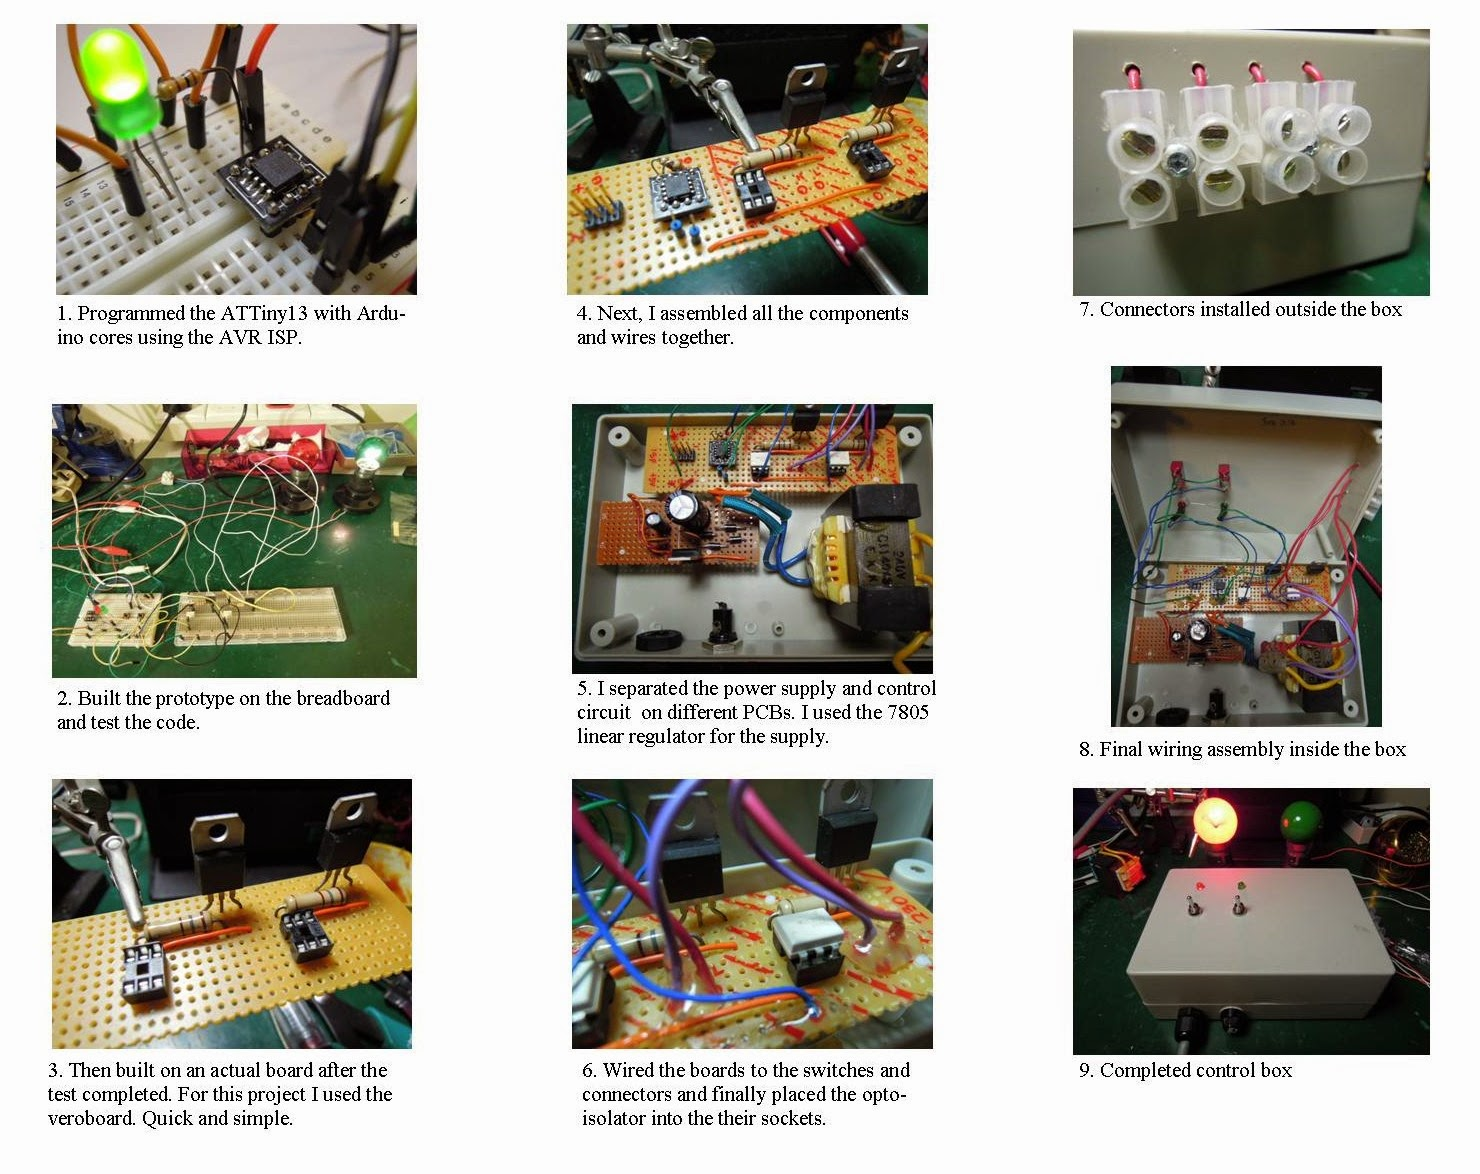 Building A Retro Sign Board Complete With Sequenced Lights Make Finally Here Are My Perfboard Layouts And Some Pictures Bernards Layout Atmels Attiny13 Microcontrollers Outfitted Arduino Cores